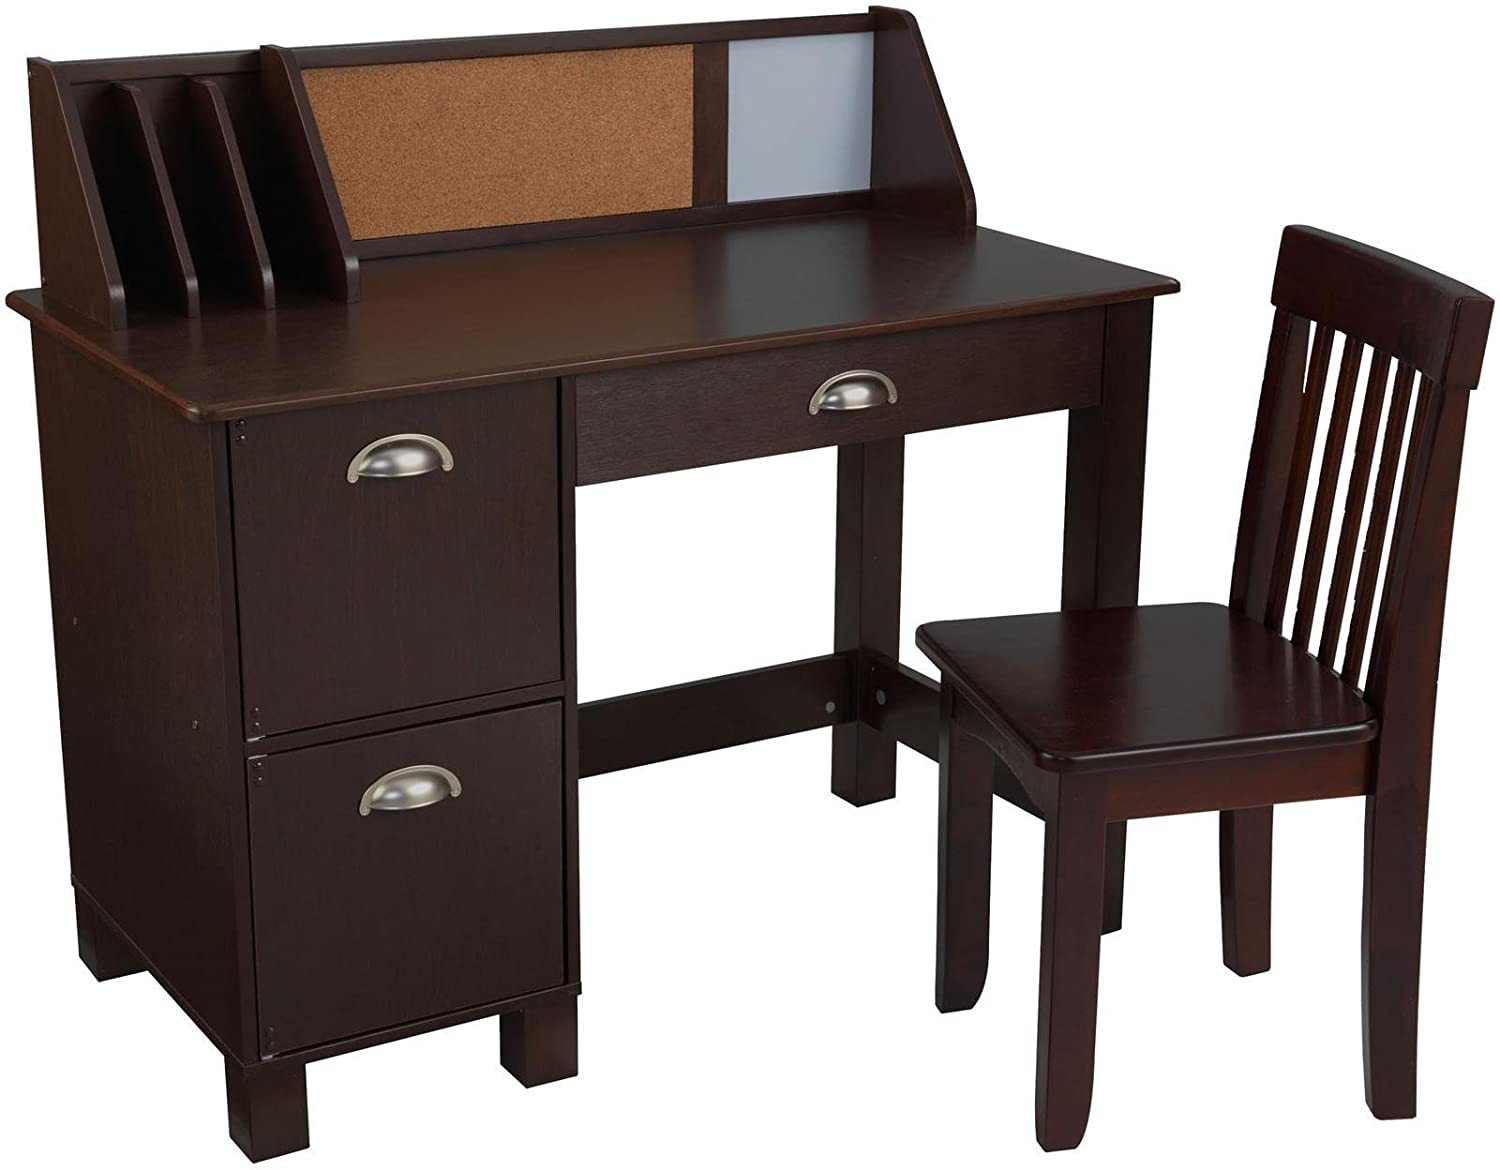 Computer table models with prices - Computer Table Models With Prices 44